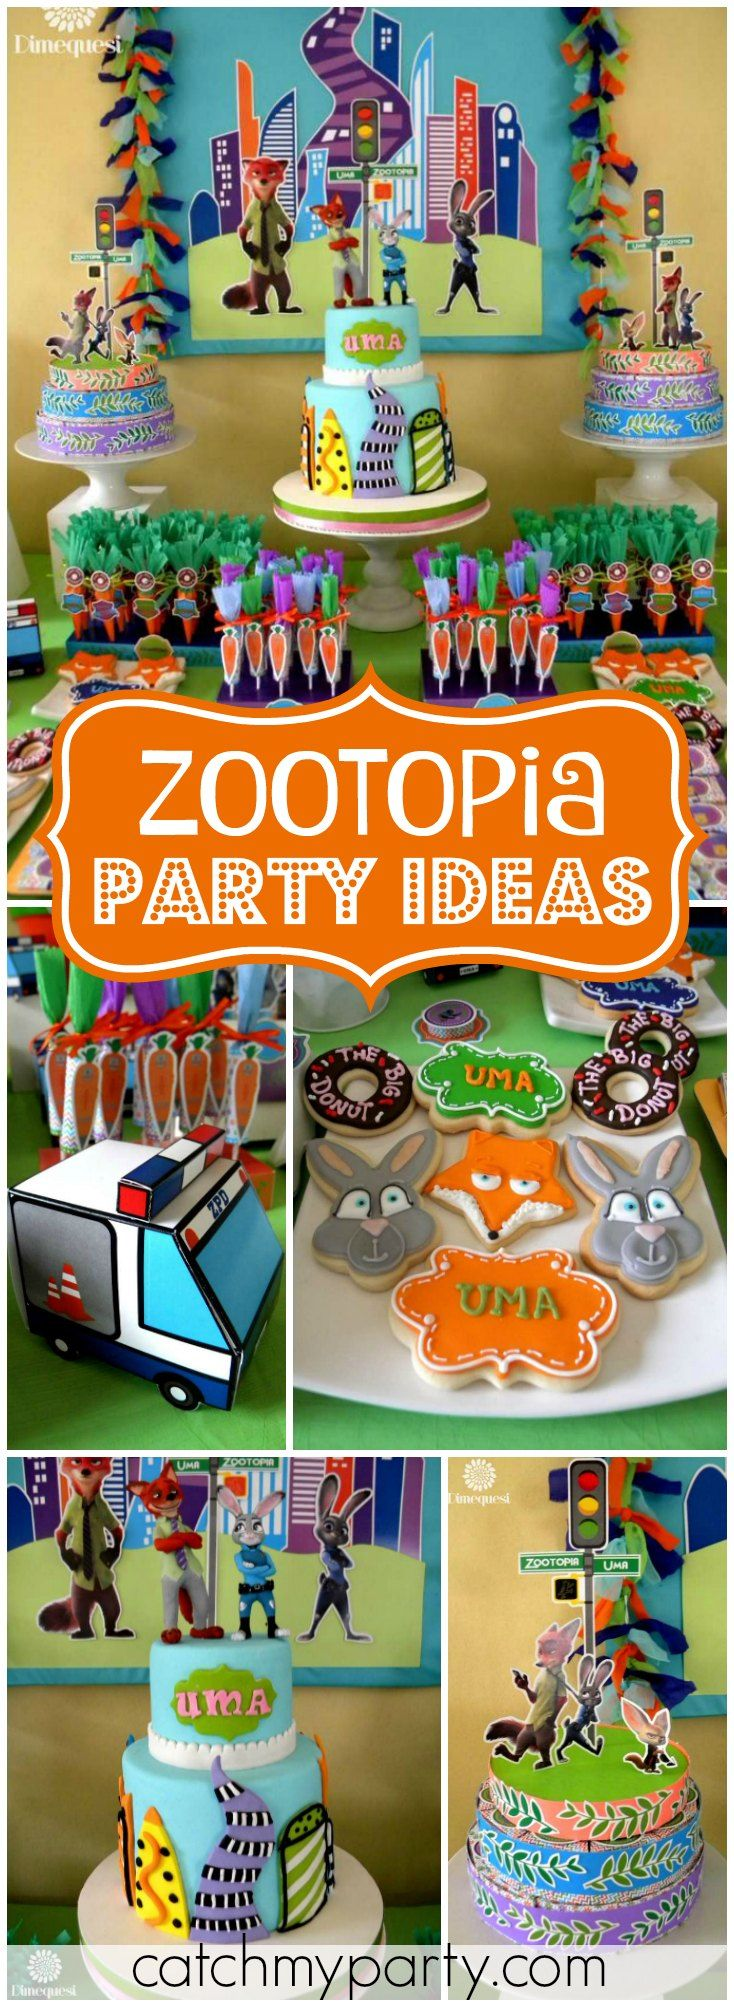 Check out this colorful and fun Zootopia birthday party! See more party ideas at Catchmyparty.com!